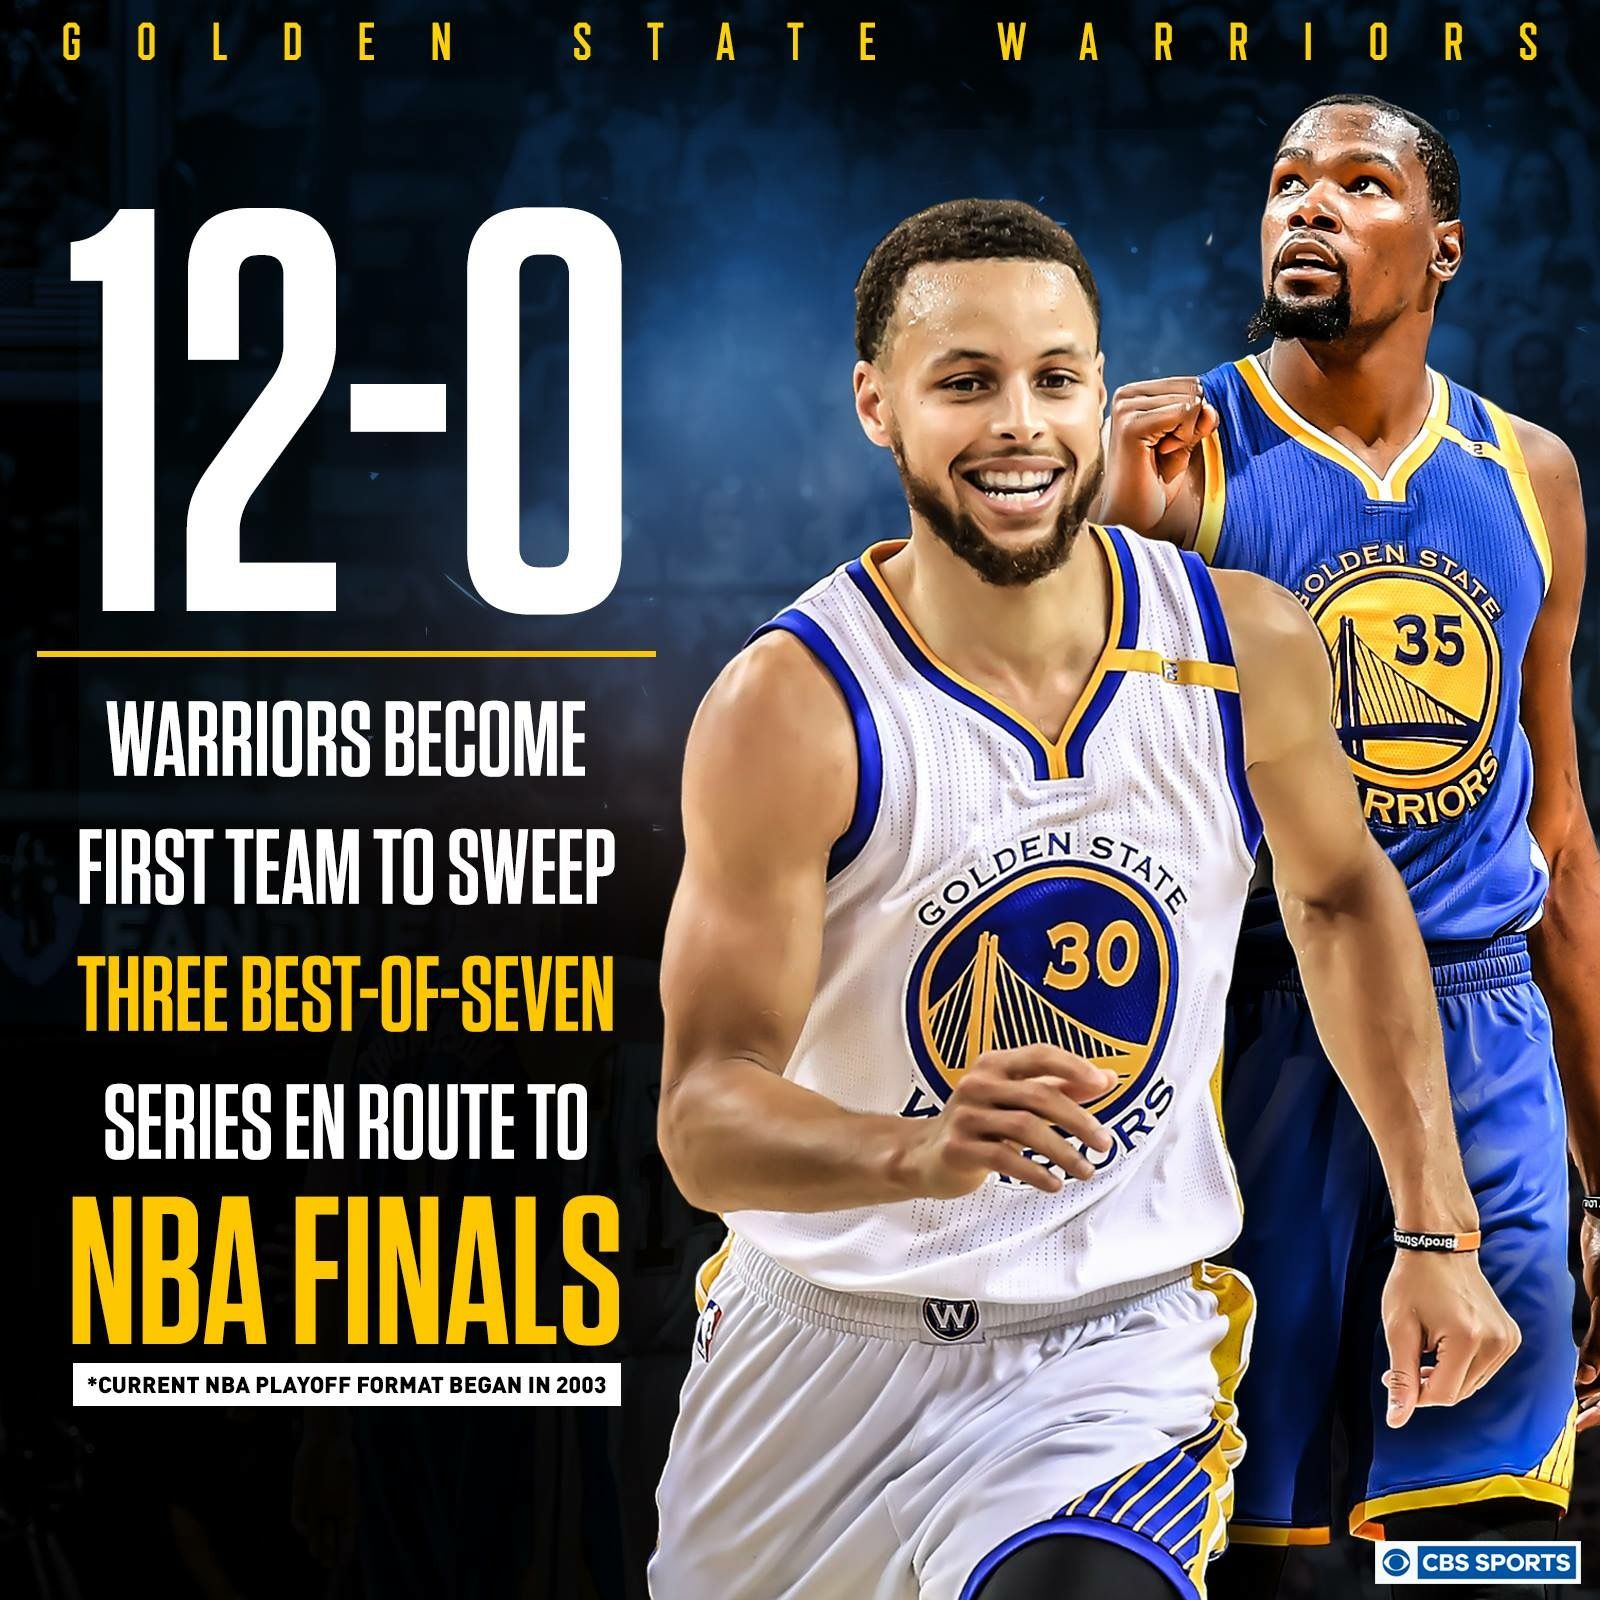 Pin by 239 on Basketball Cbs sports, One team, Nba playoffs